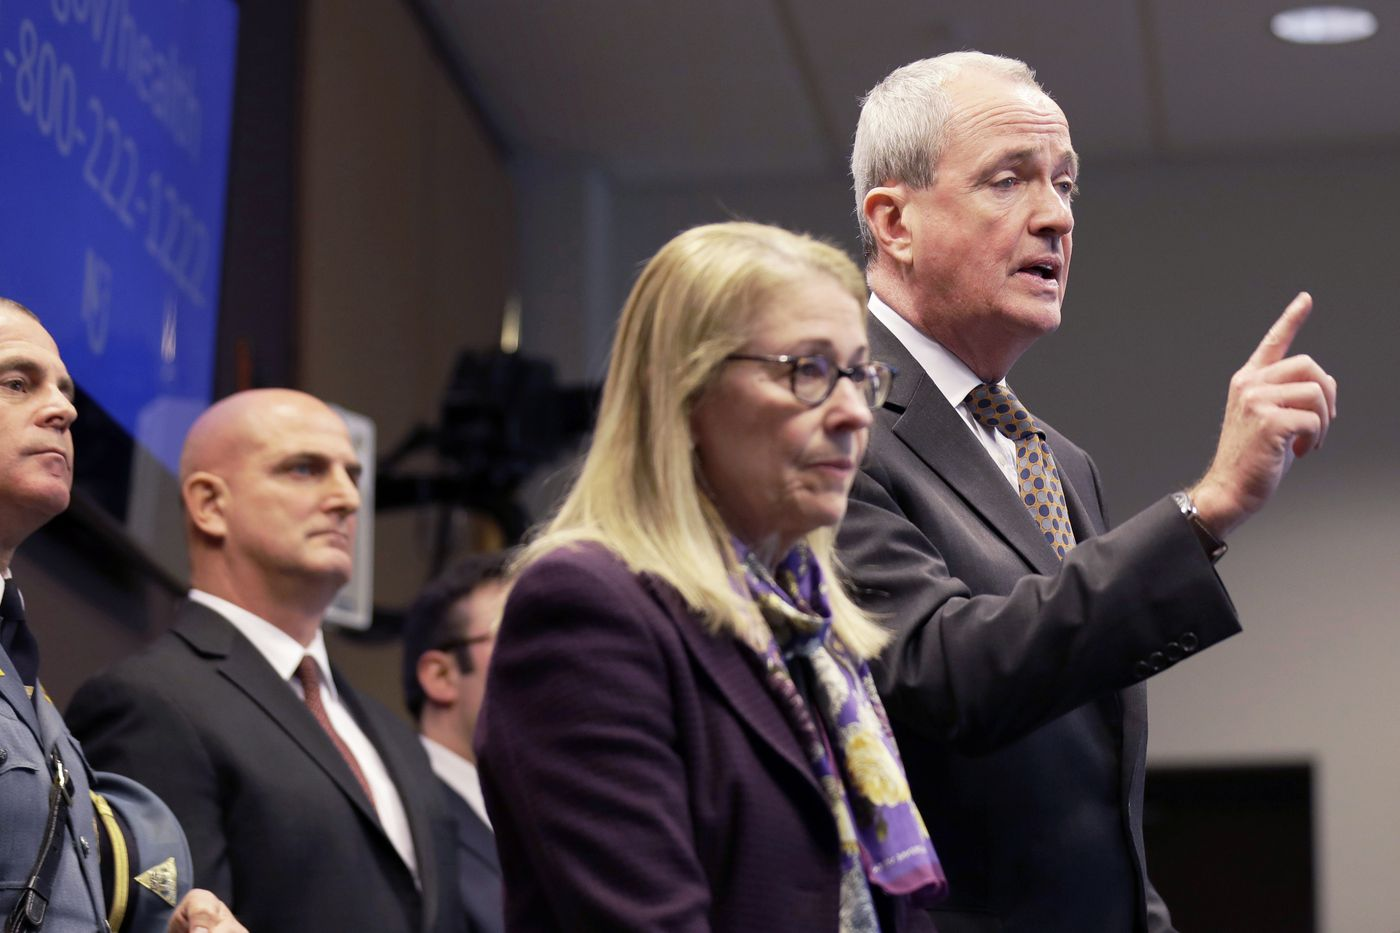 FILE- In this March 2, 2020 file photo, New Jersey Gov. Phil Murphy, right, is joined by Health Commissioner Judith Persichilli, center, during a news conference in Ewing, N.J., Monday, March 2, 2020. On Wednesday, March 4, 2020, Murphy, Persichilli and Acting Governor Sheila Oliver announced the first presumptive positive case of novel coronavirus, or COVID-19, in New Jersey. The individual, a male in his 30s, is hospitalized in Bergen County and has been hospitalized since March 3. (AP Photo/Seth Wenig, File)